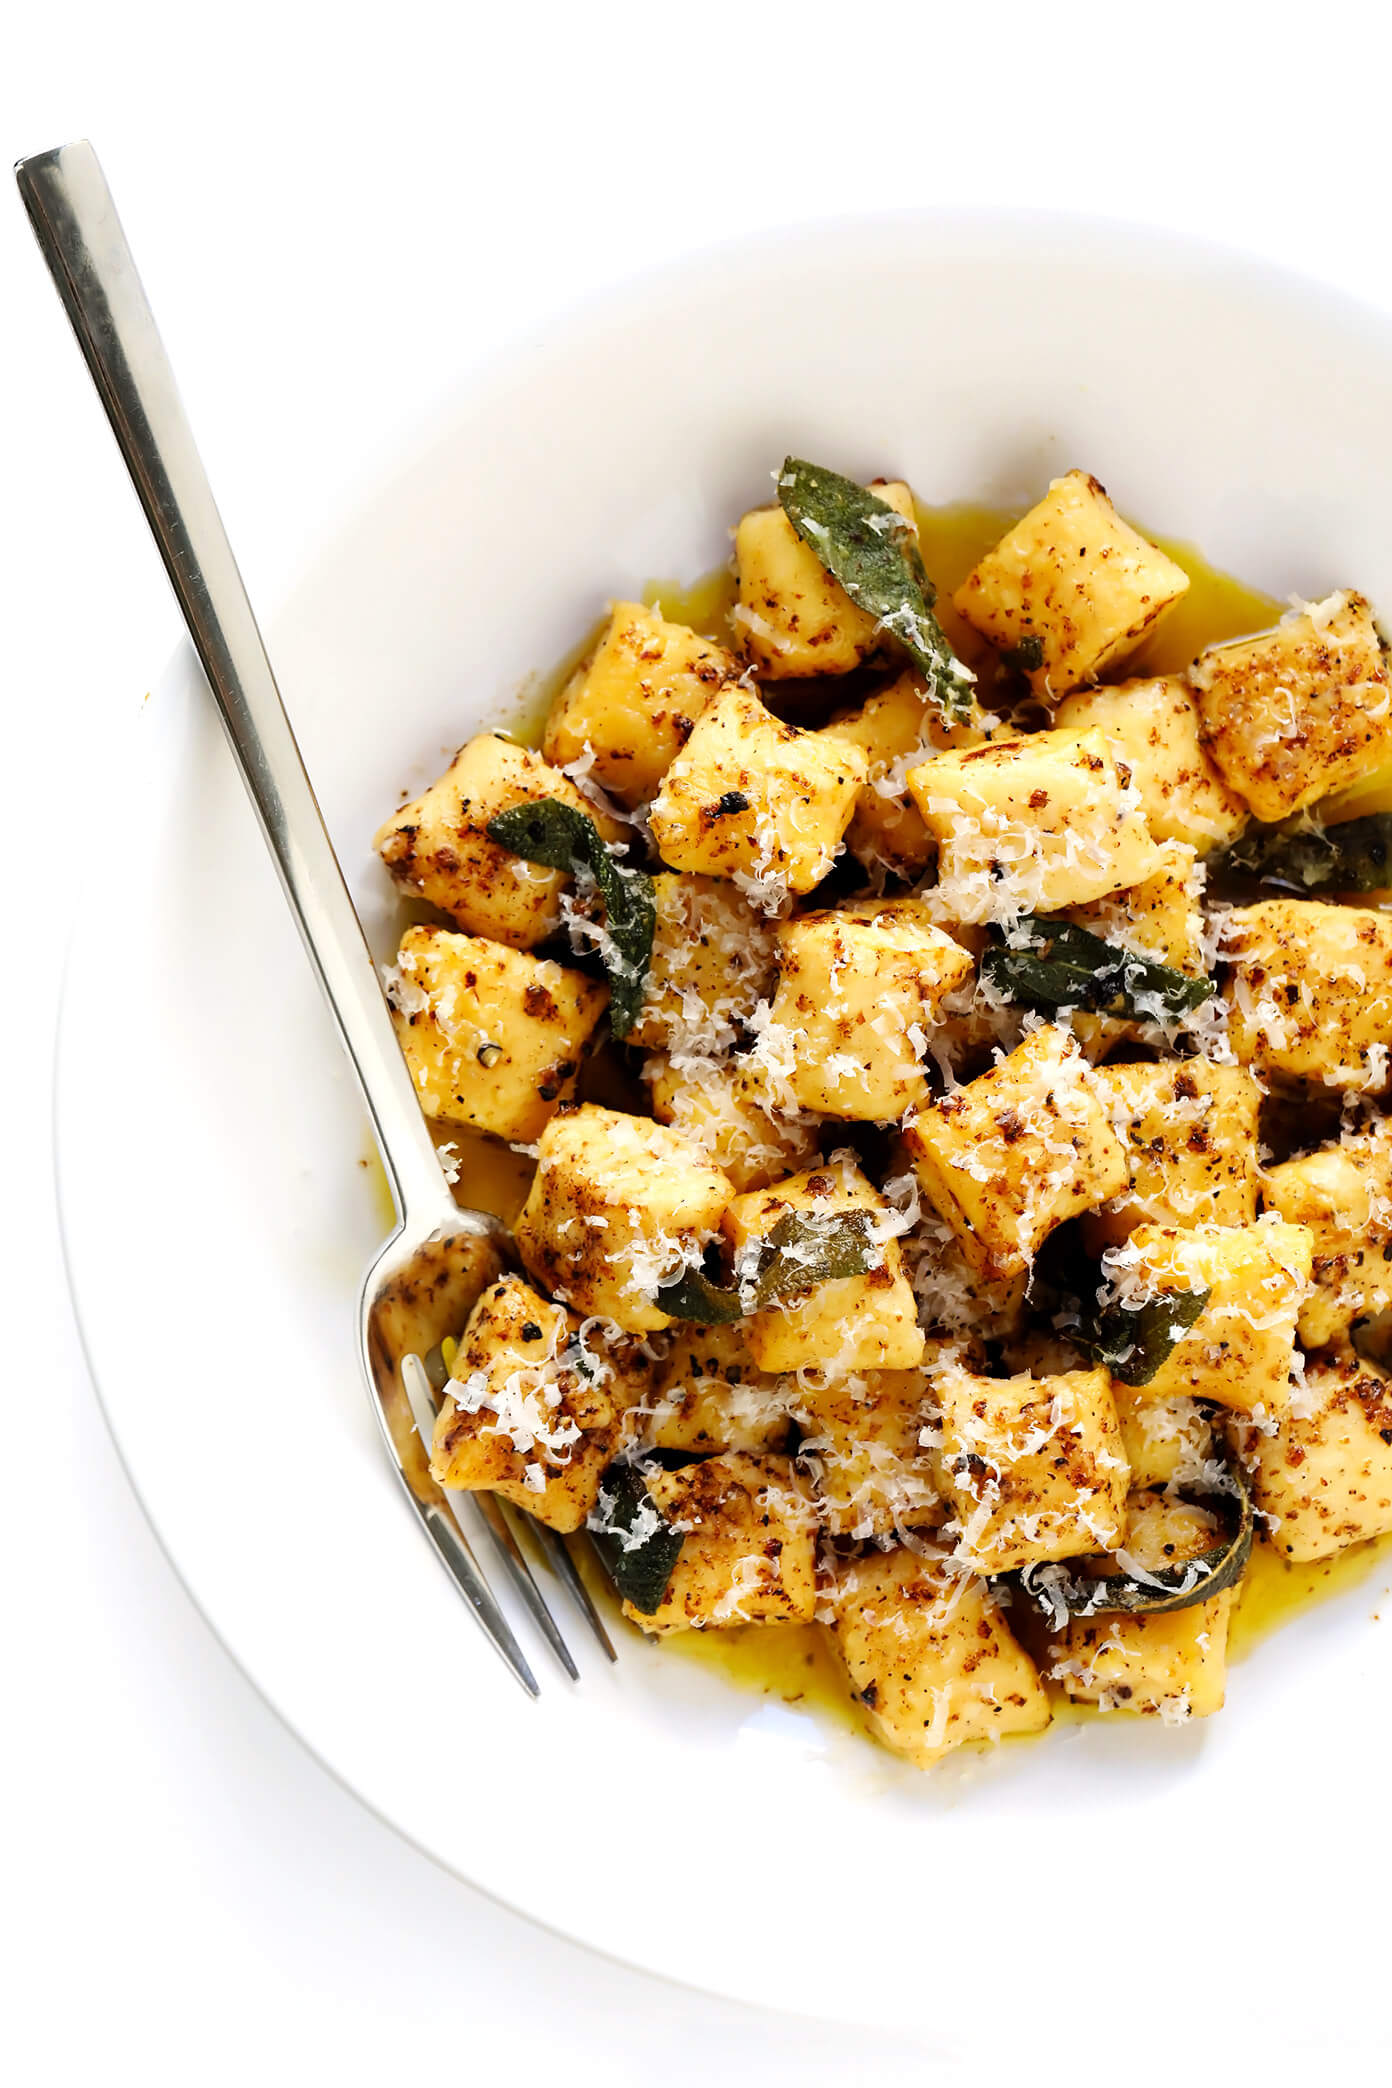 Gnocchi with Brown Butter Sauce